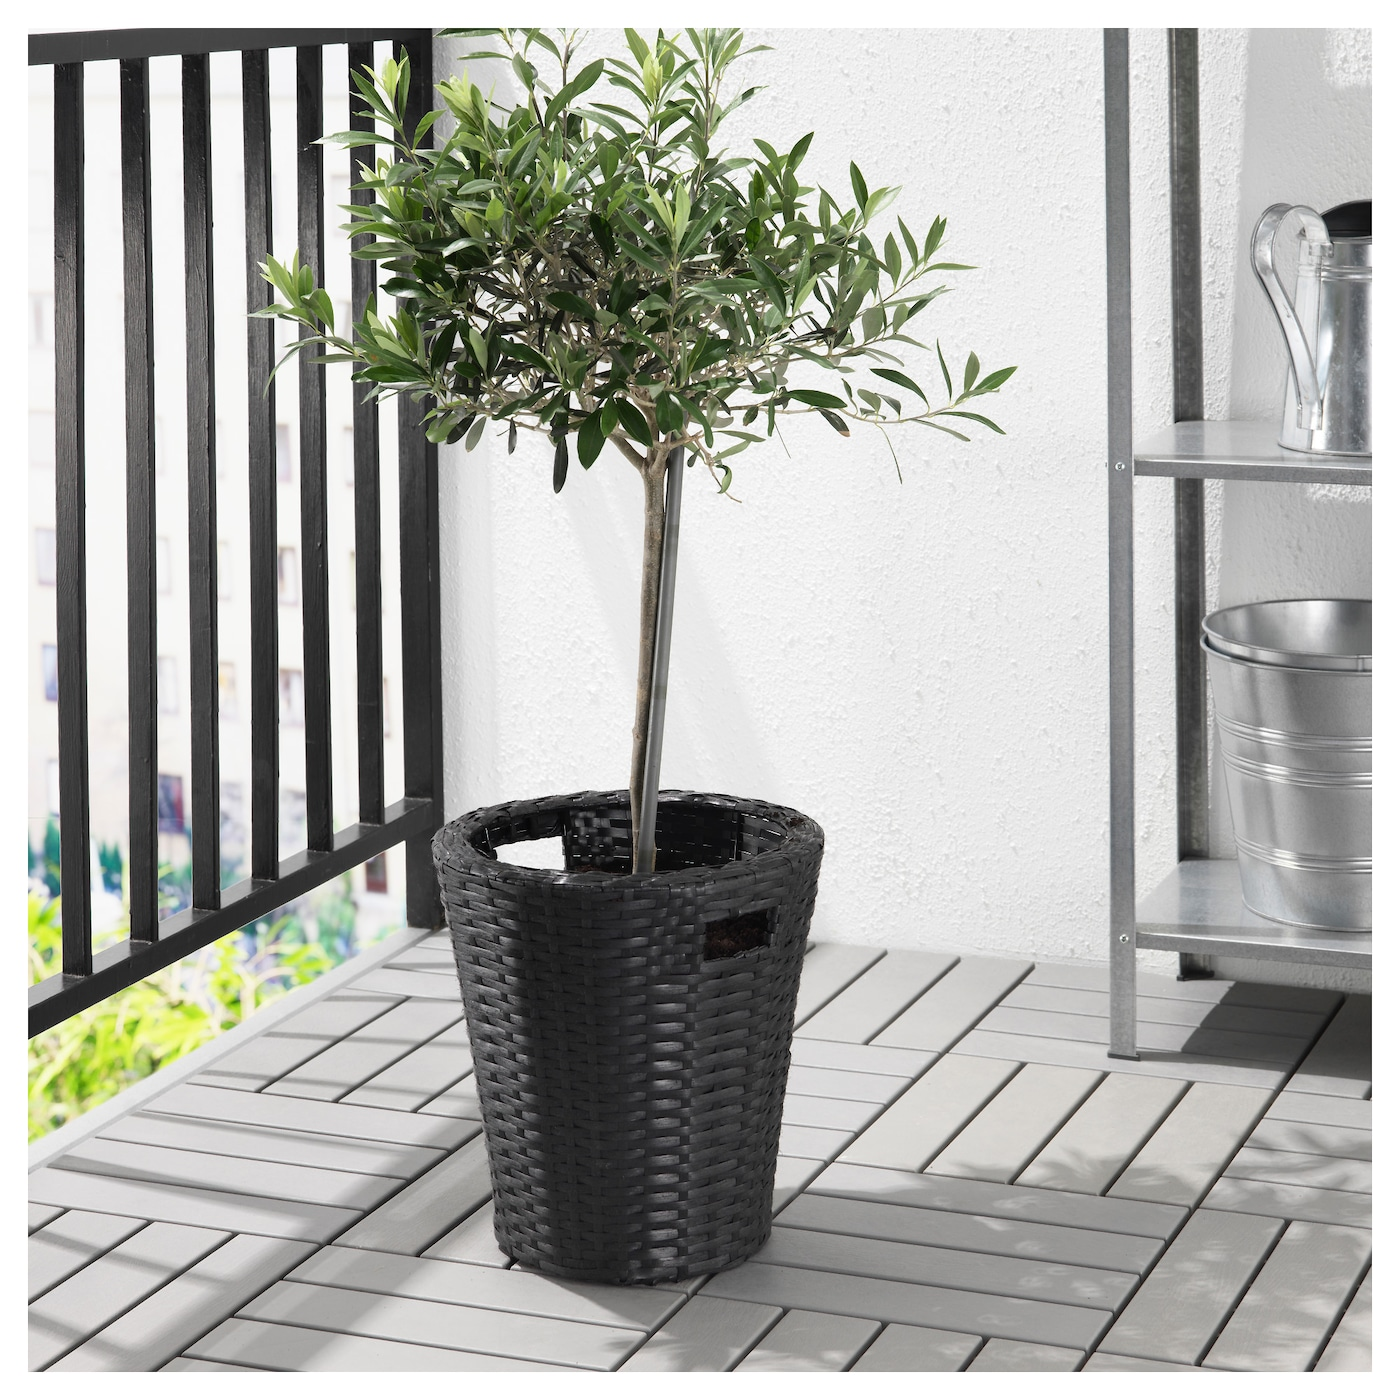 Kokbanan plant pot in outdoor black 24 cm ikea for Black planters ikea